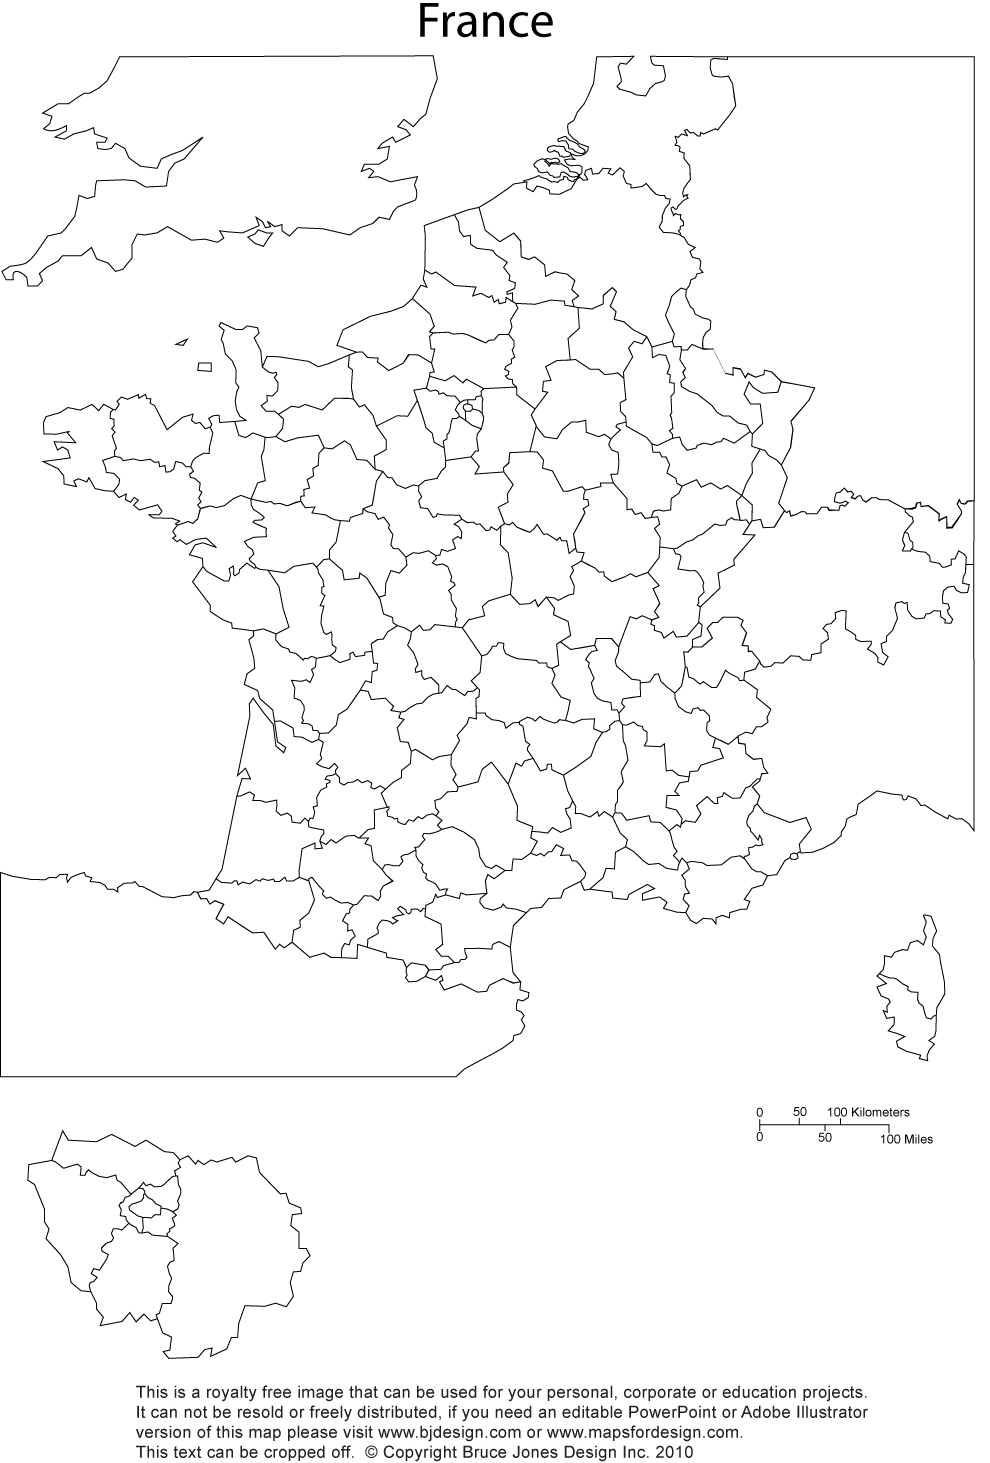 France printable blank map, administrative districts, royalty free, clip art